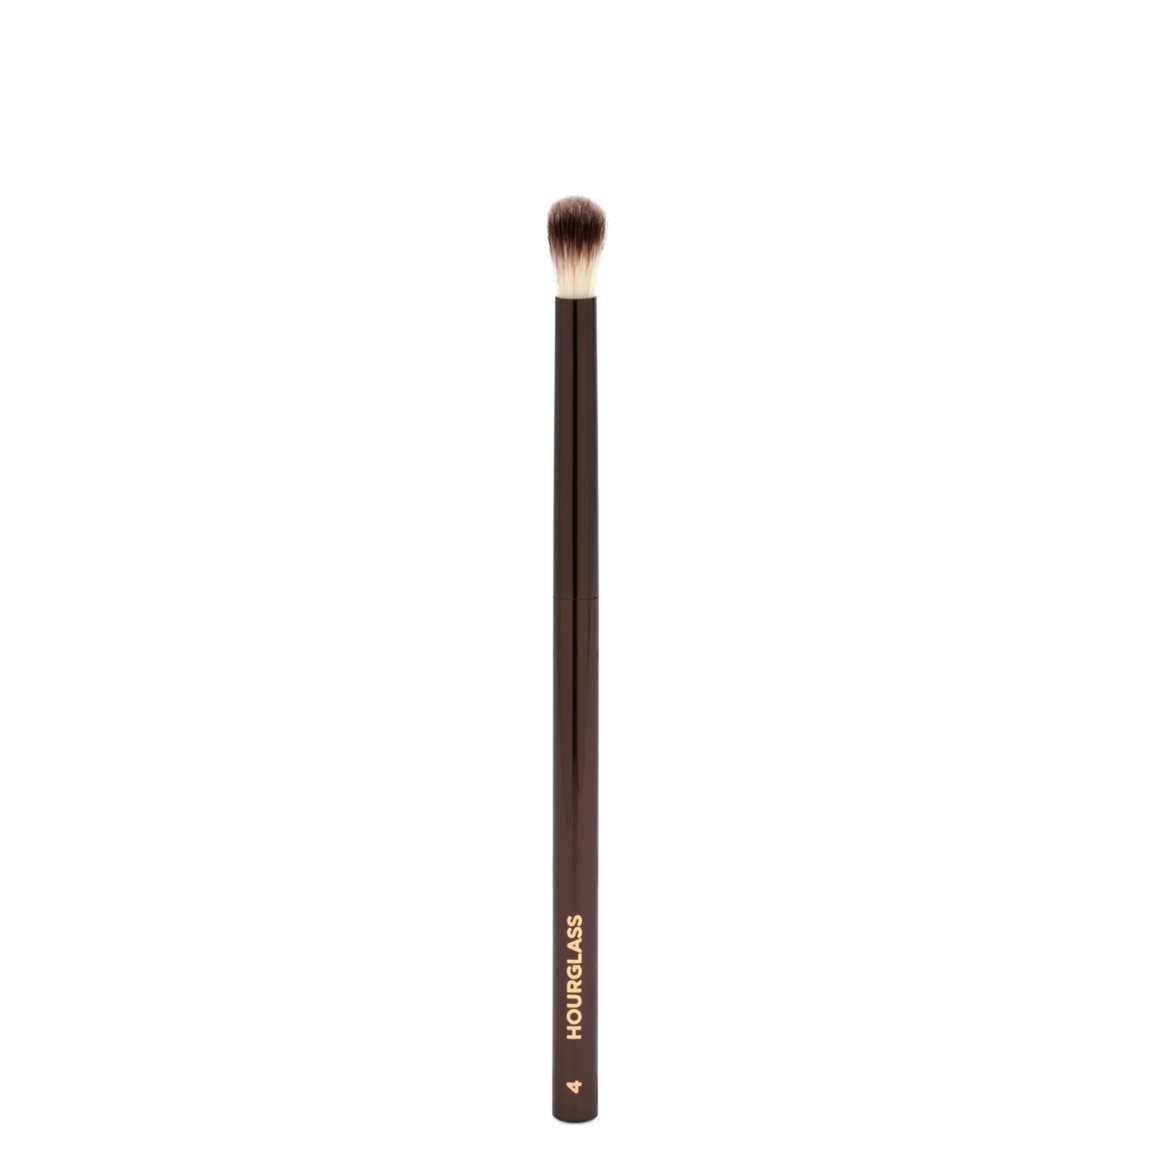 Hourglass N° 4 Crease Brush product smear.